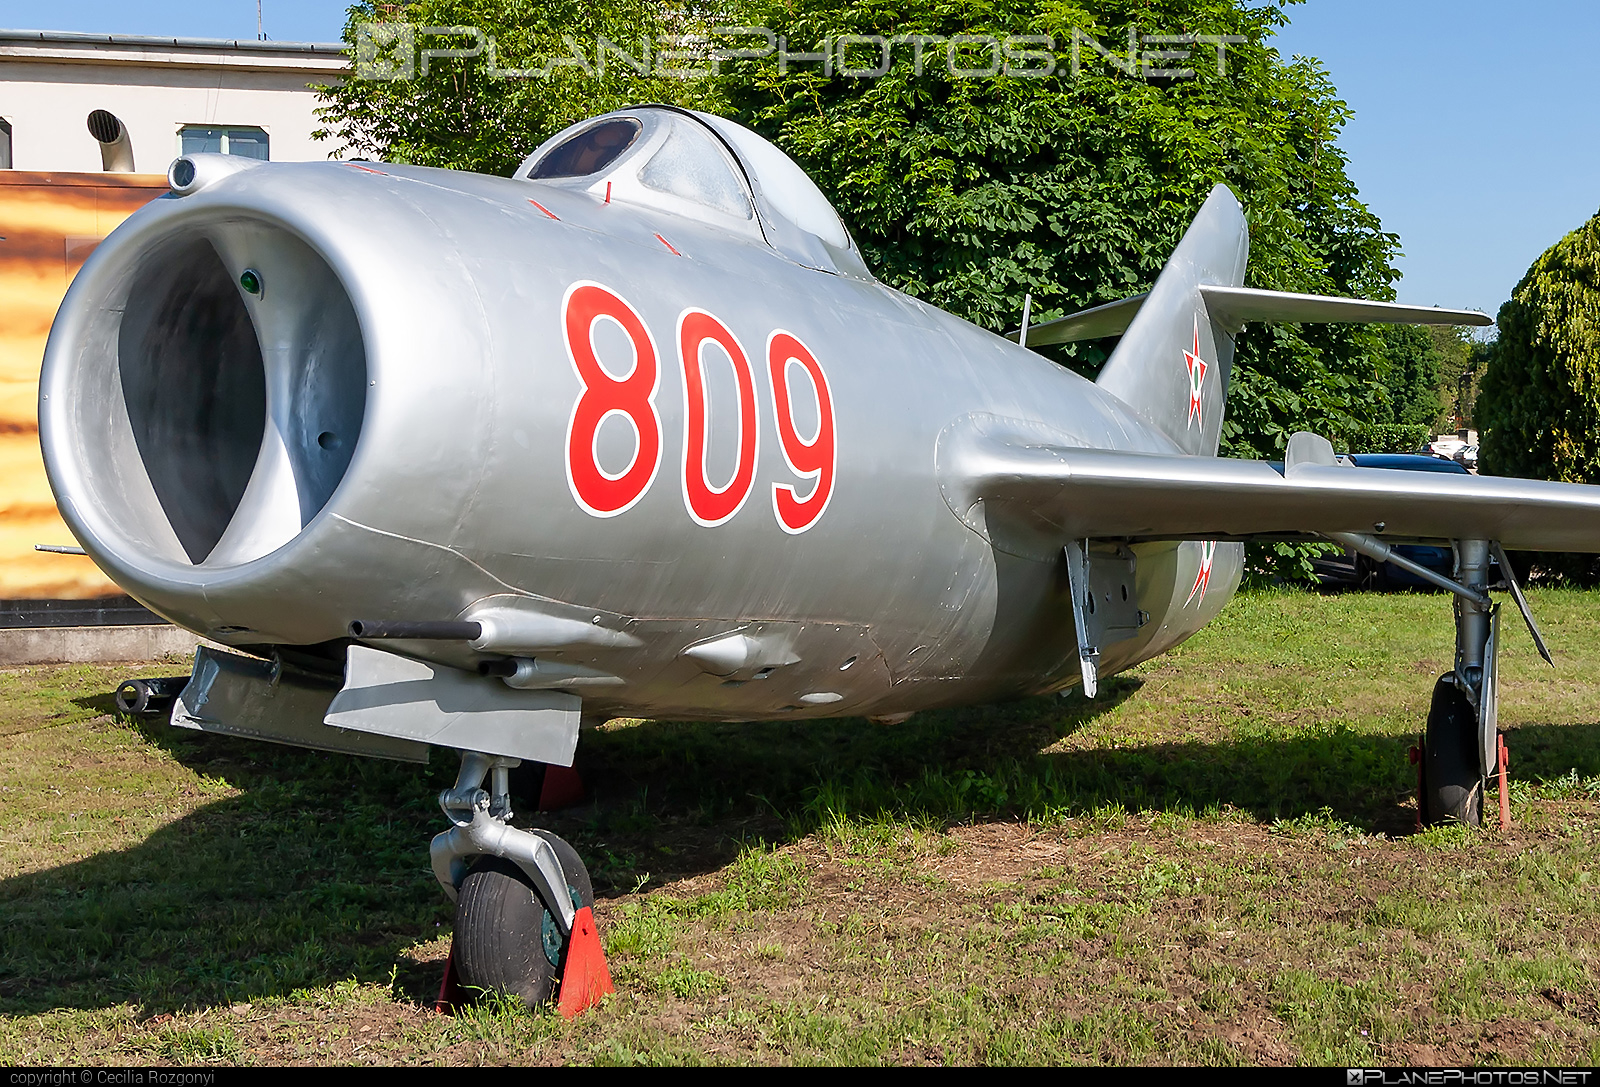 Mikoyan-Gurevich MiG-15bis - 809 operated by Magyar Néphadsereg (Hungarian People's Army) #hungarianpeoplesarmy #magyarnephadsereg #mig #mig15 #mig15bis #mikoyangurevich